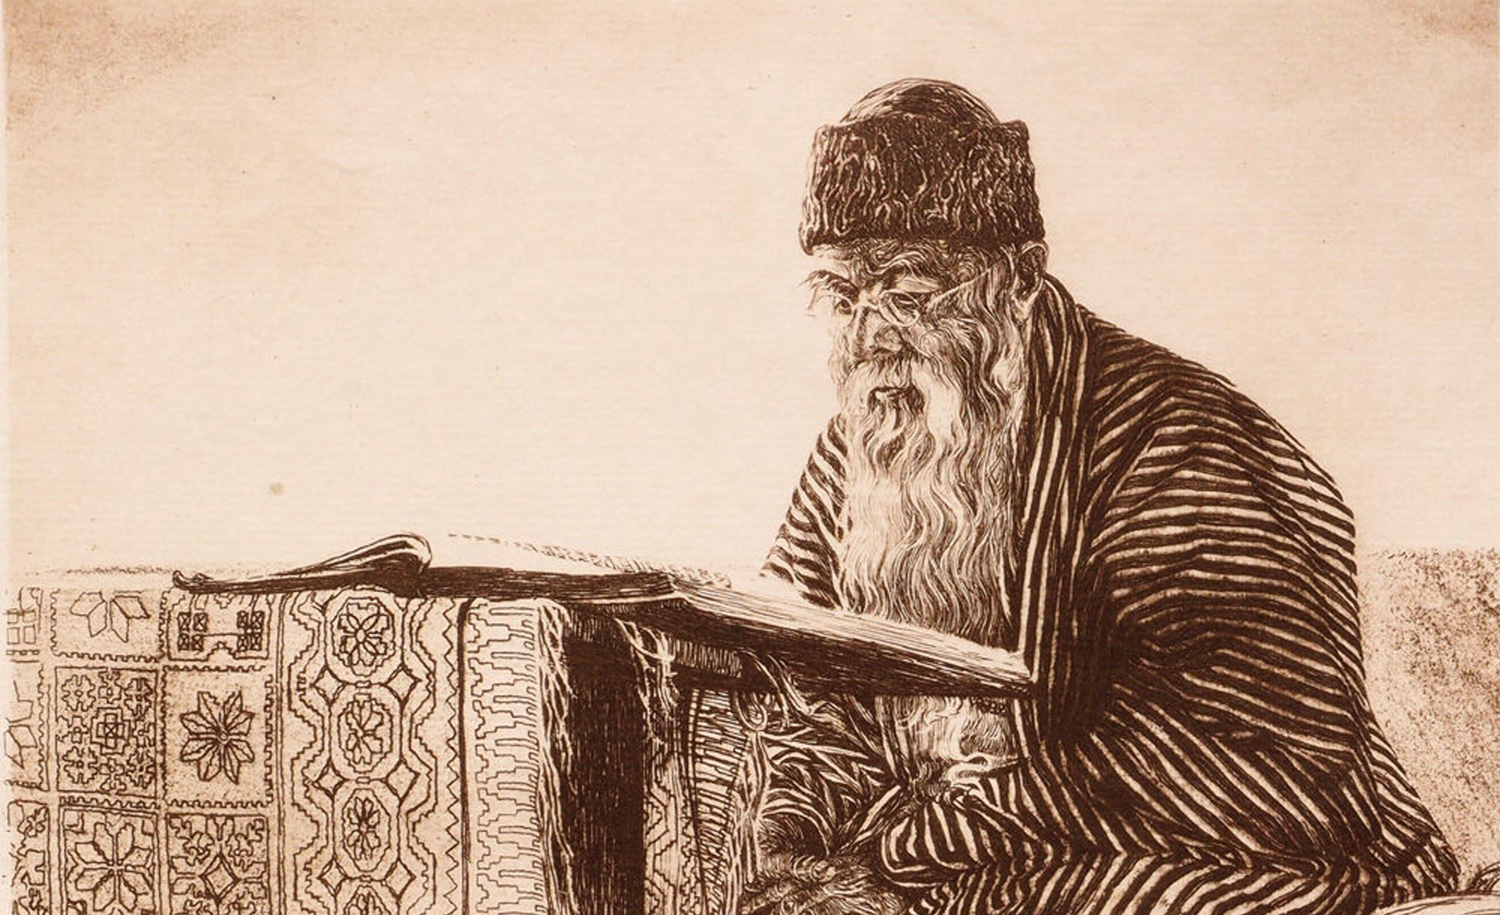 The First Great Jewish Philosopher (to the Jews)